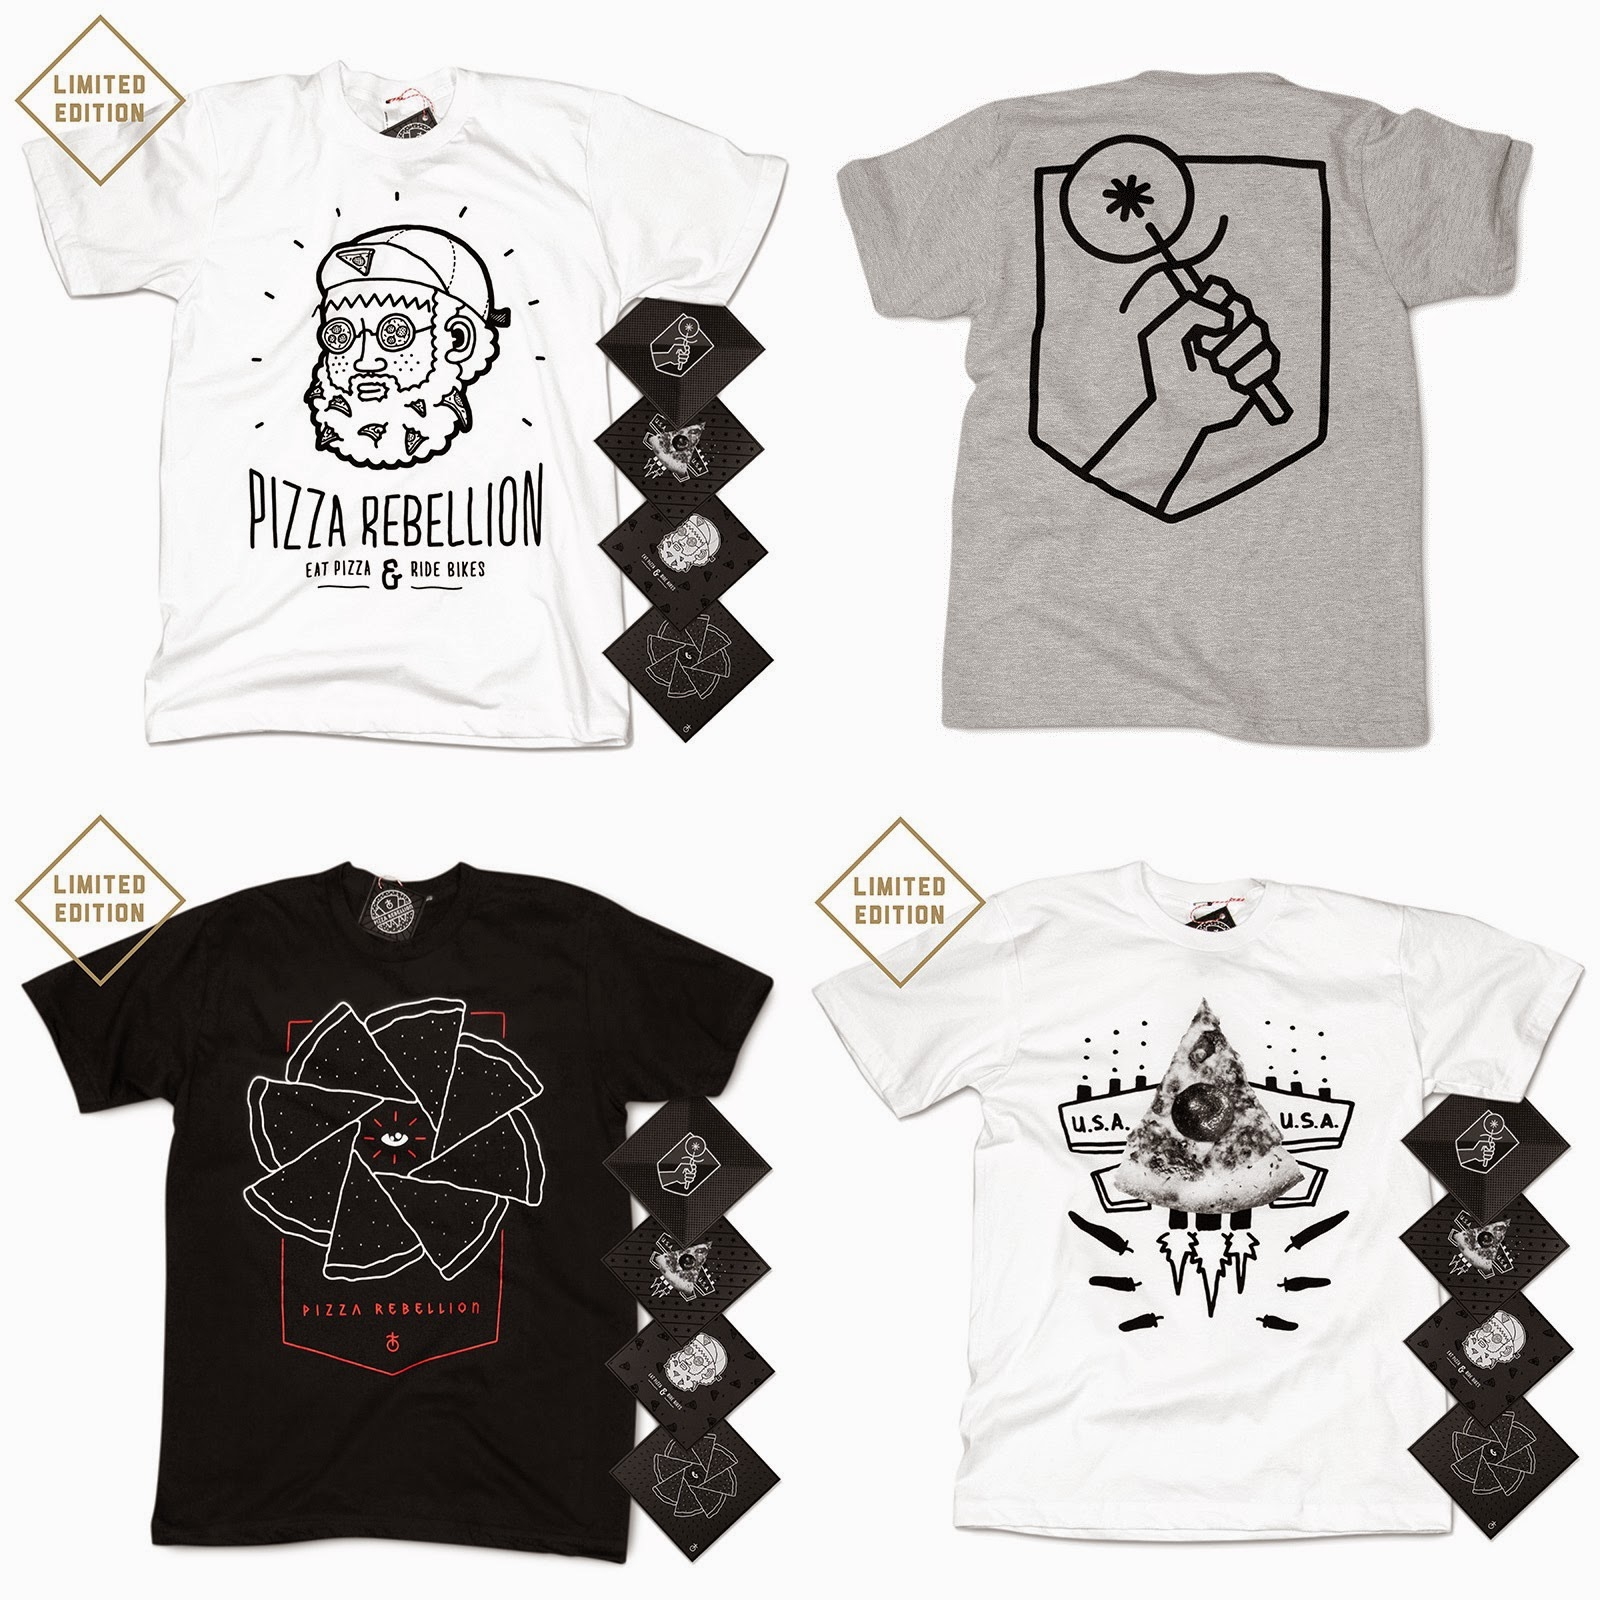 Pizza Rebellion T-Shirt Collection - The Pizza Boy, Pizza Pride, Space Pizza & Chilly Bomber